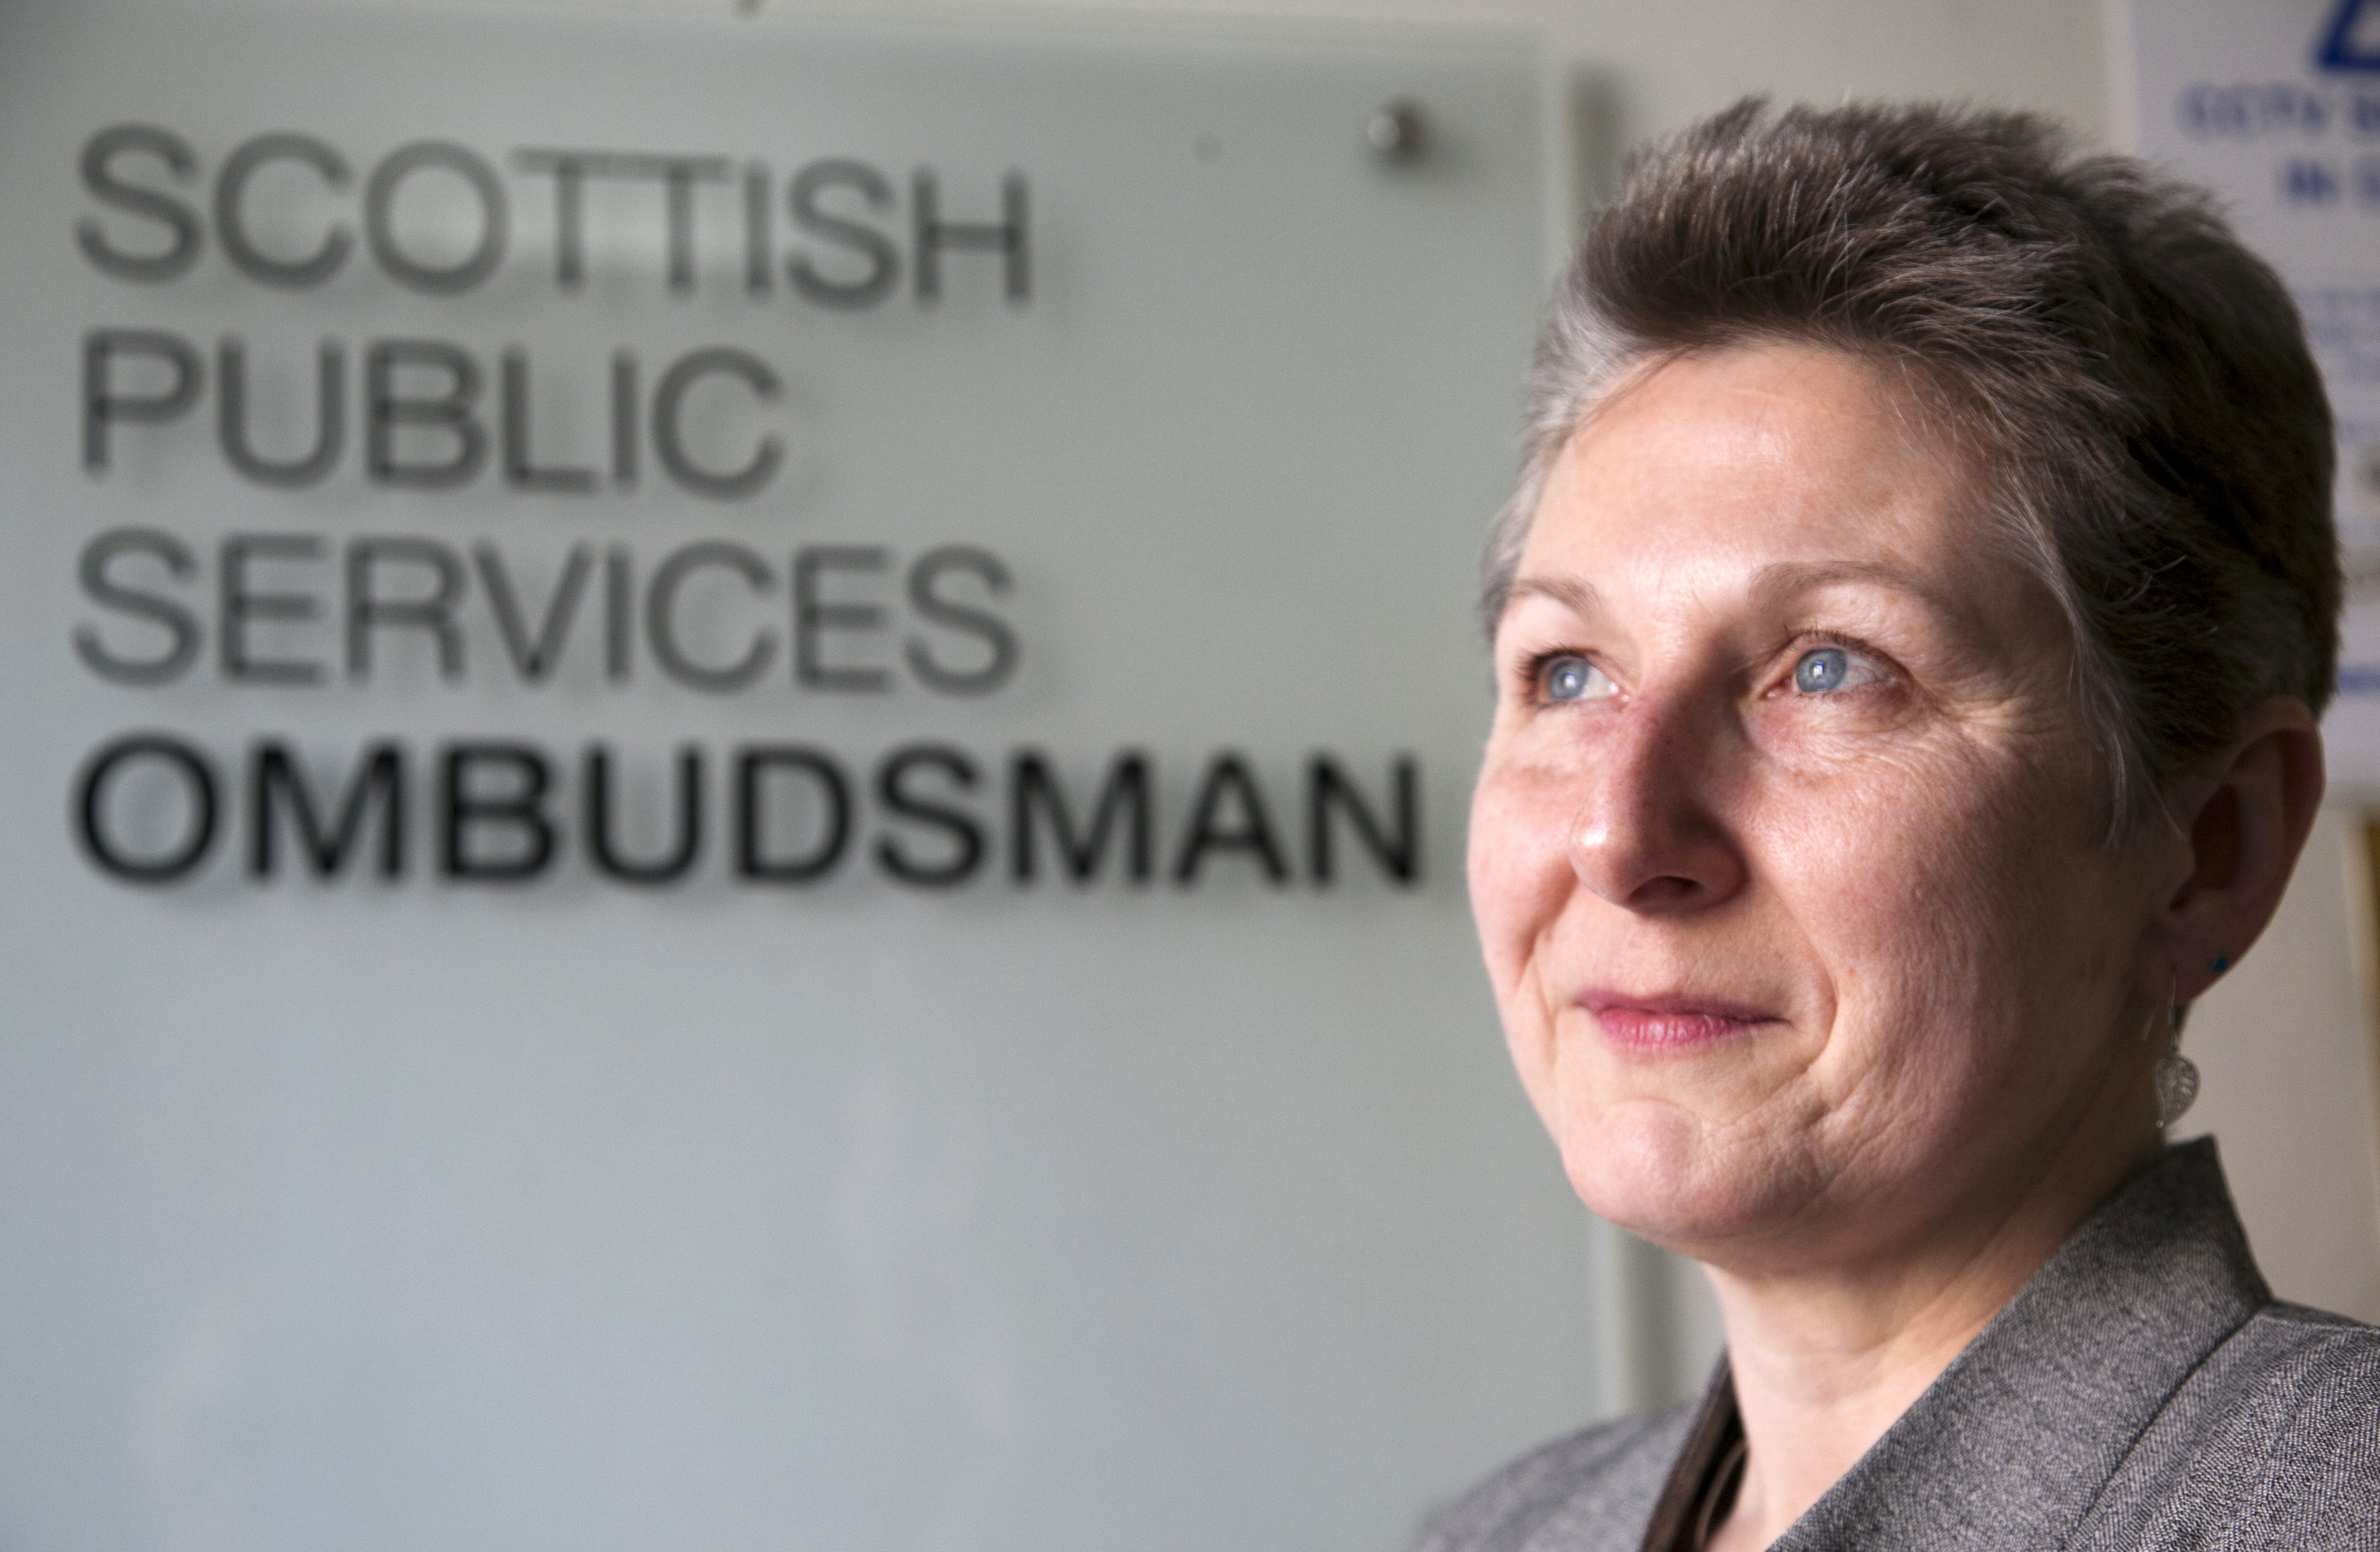 Rosemary Agnew, Scottish Public Services Ombudsman (Alistair Linford)